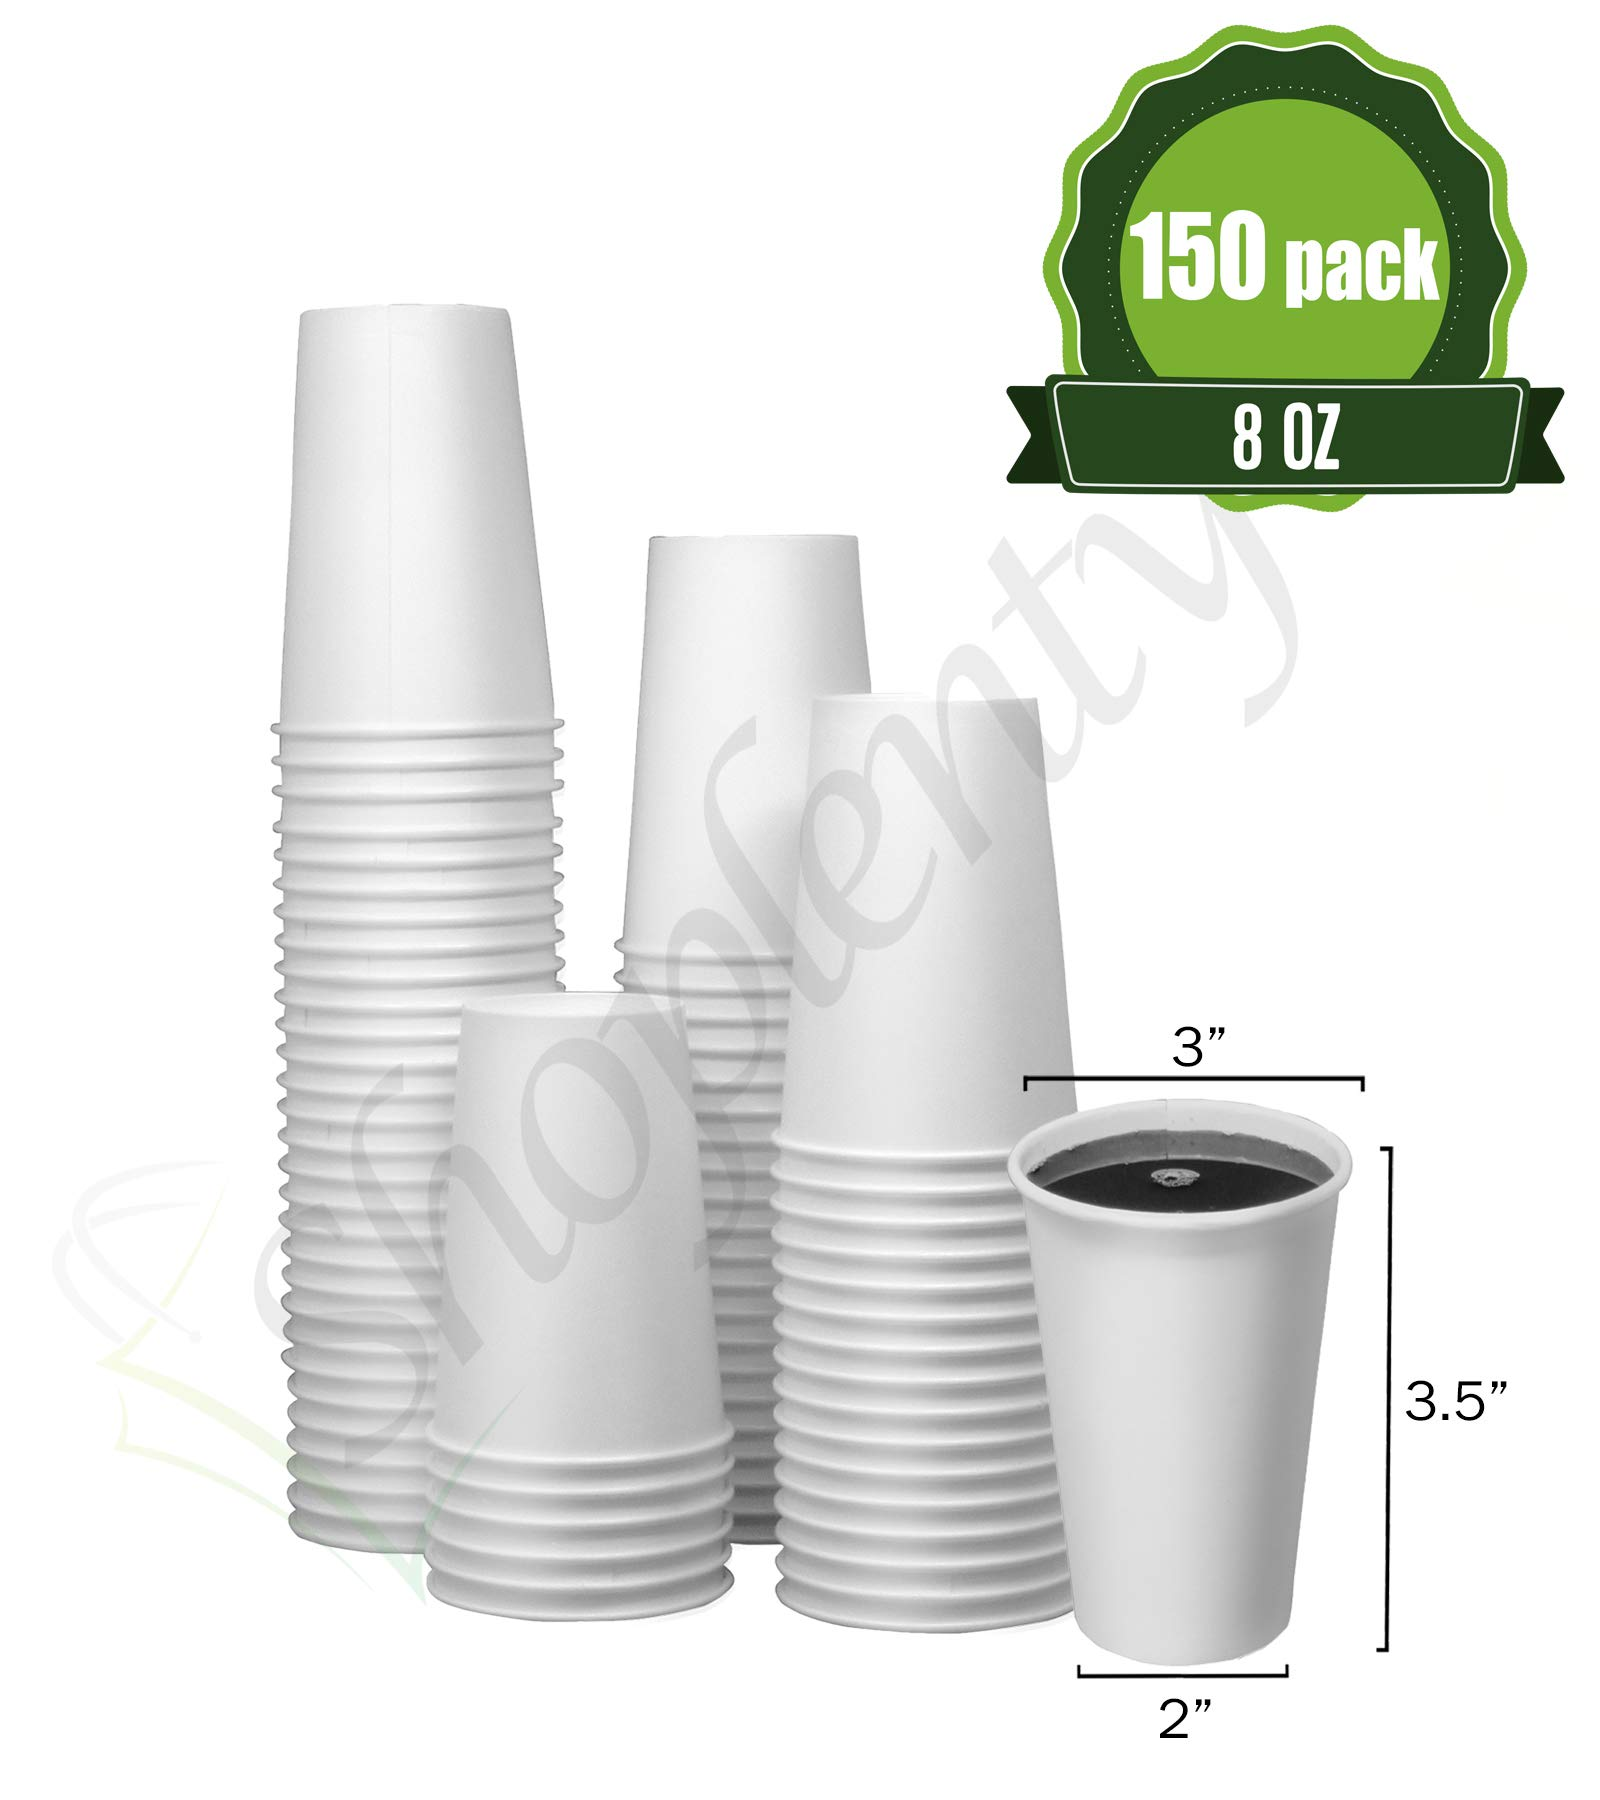 Hot White Paper Coffee Cups [ 8oz - 150 Pack ] Disposable Coffee Cups Ideal for Home, Office, Restaurant, and Togo